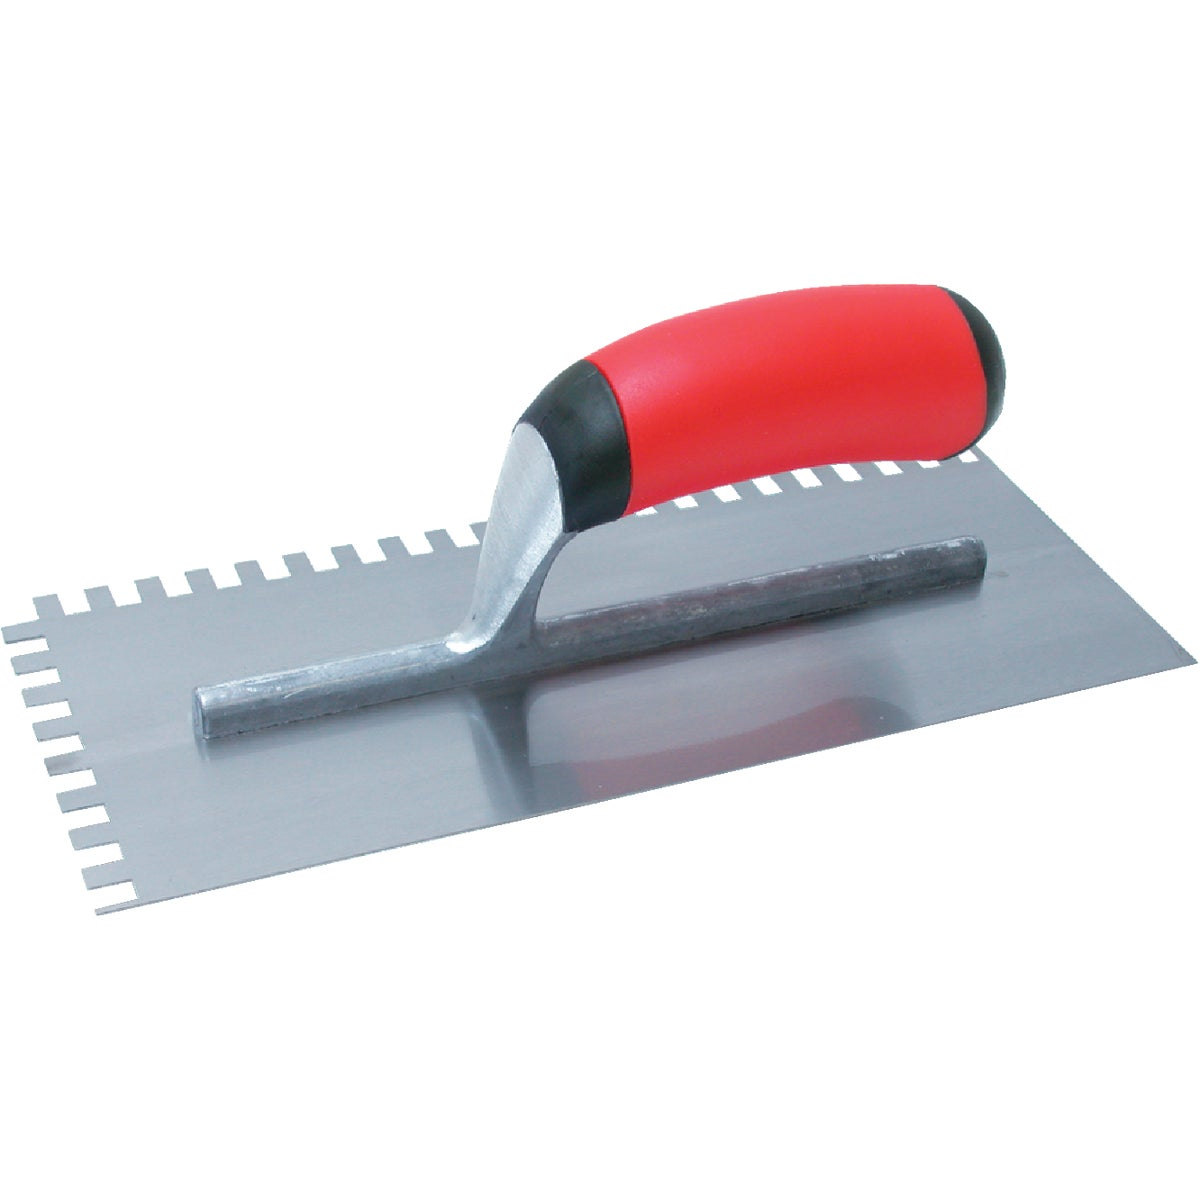 "NT670 1/2"" NOTCH TROWEL - 15670 by Marshalltown Trowel"